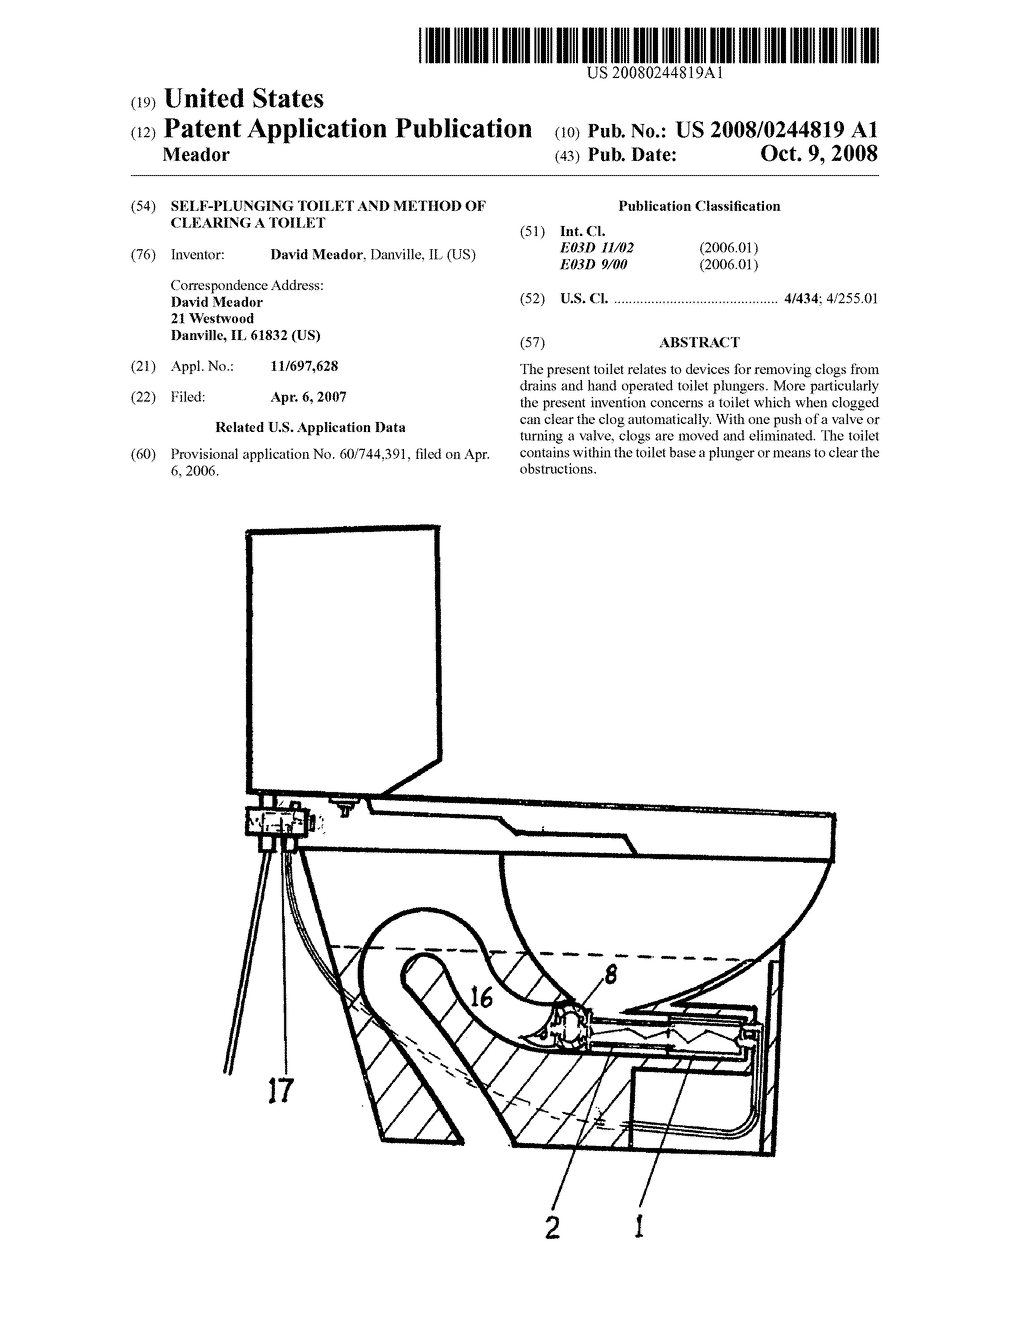 SELF-PLUNGING TOILET AND METHOD OF CLEARING A TOILET - diagram, schematic, and image 01